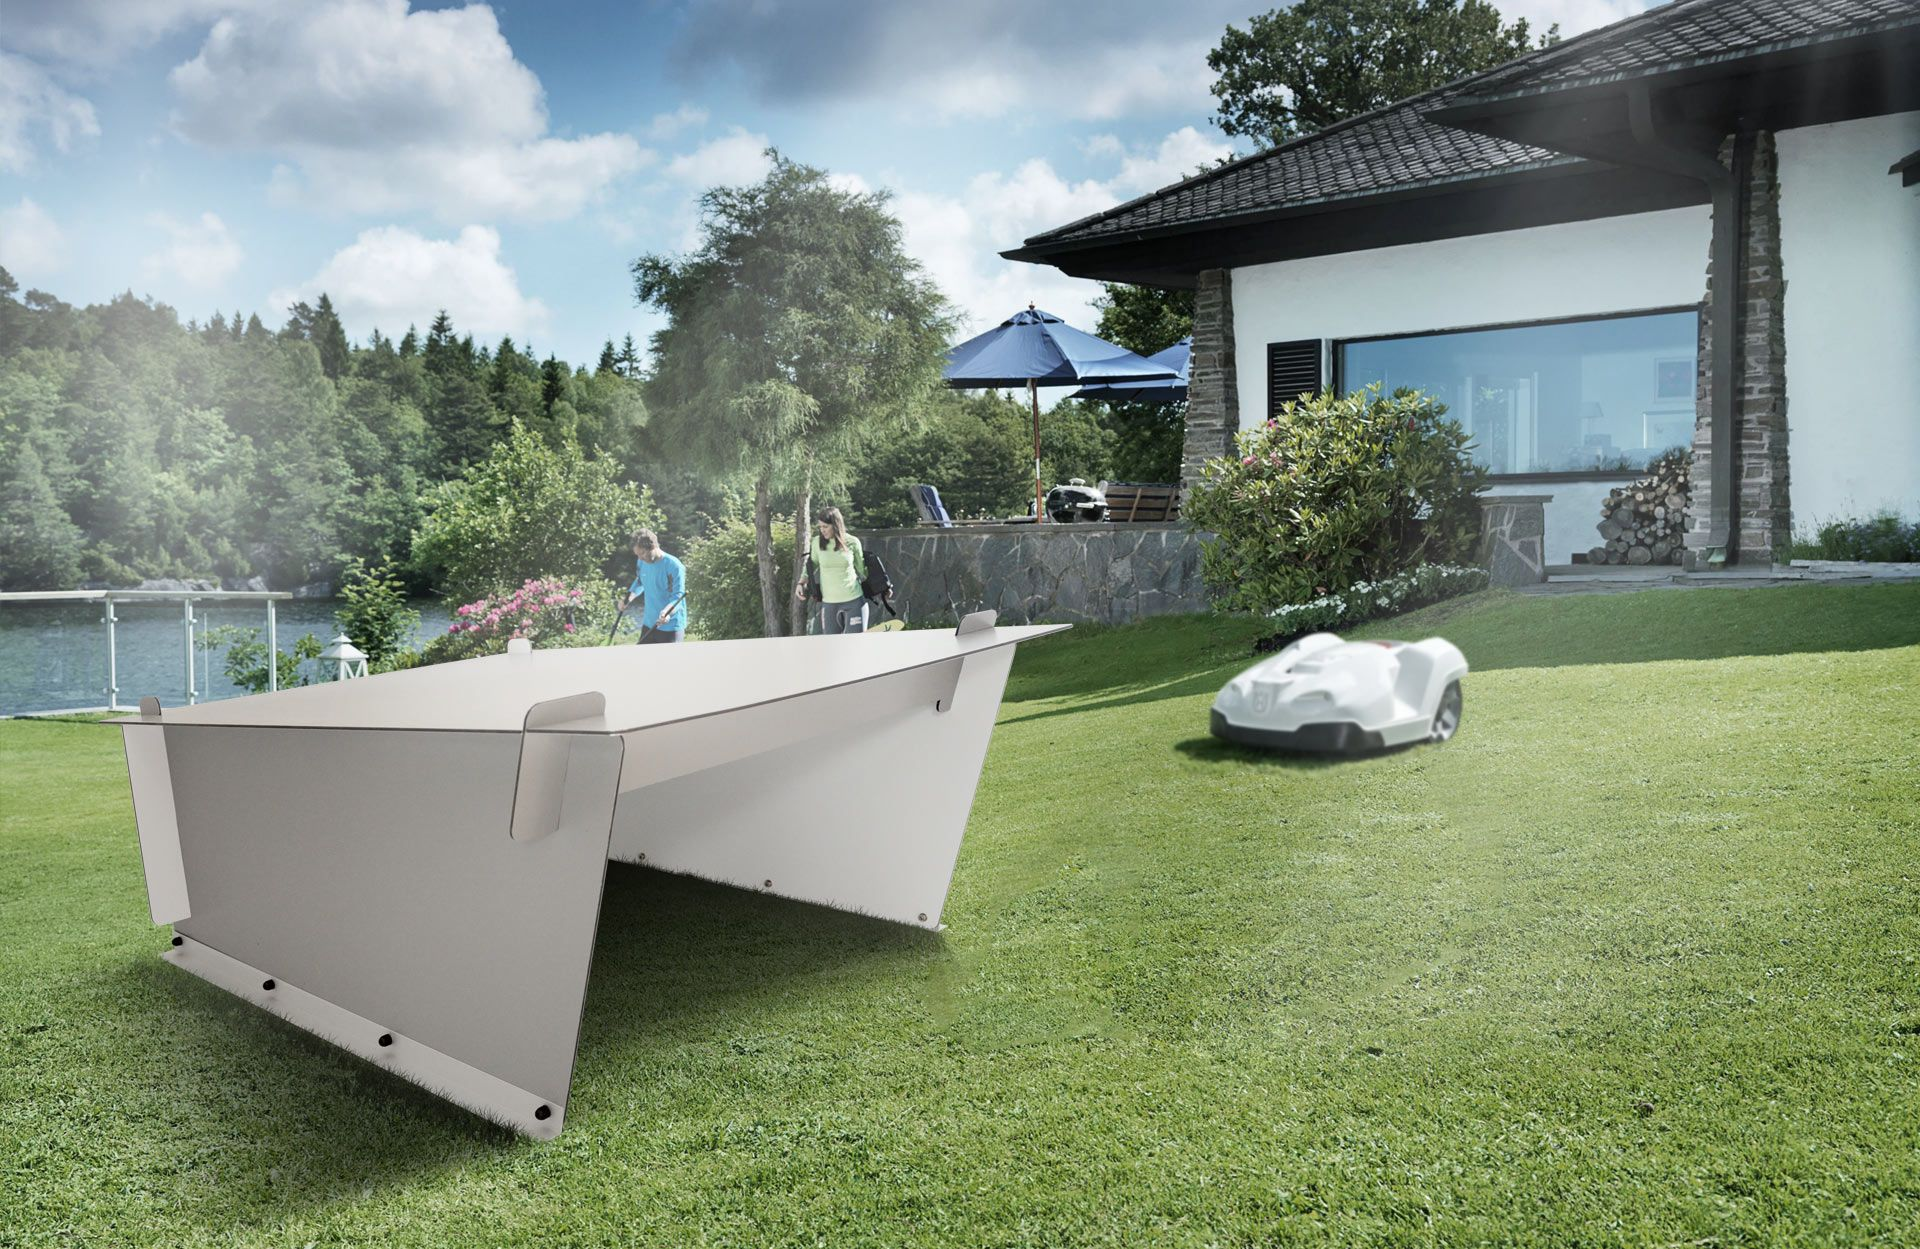 automower rasenm her roboter robotic lawn mower tondeuse. Black Bedroom Furniture Sets. Home Design Ideas